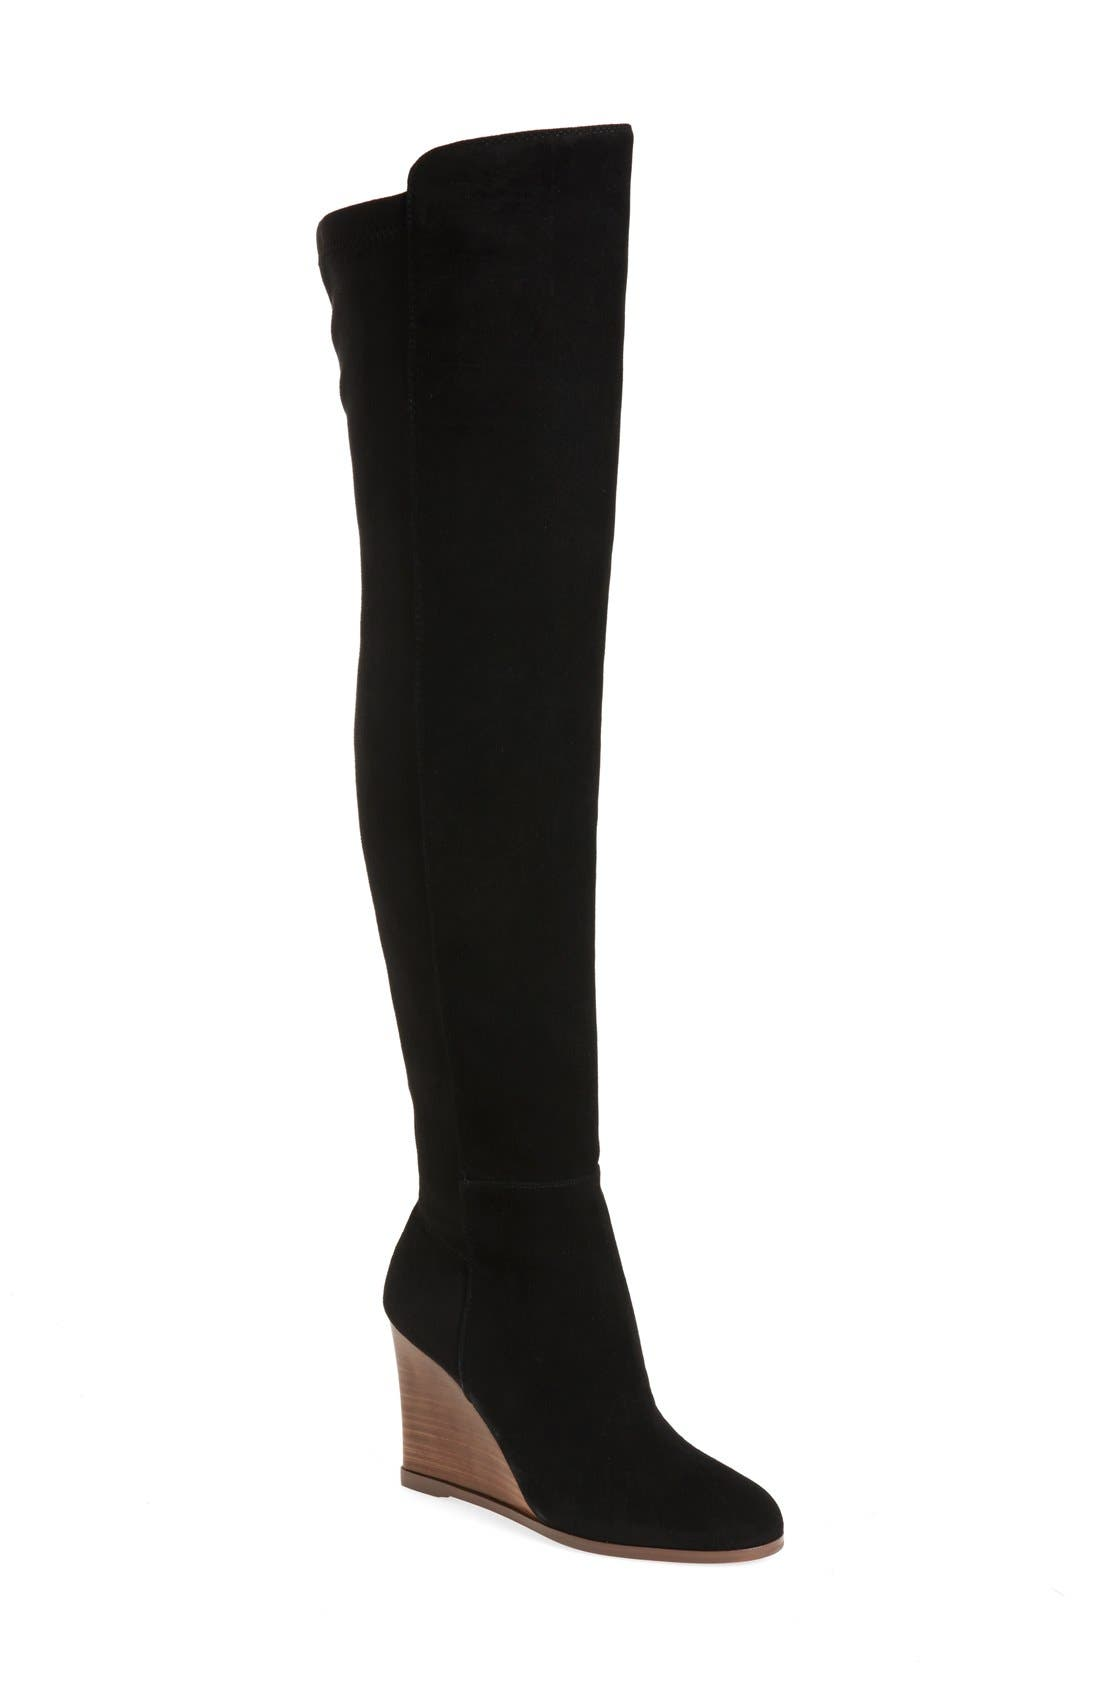 Alternate Image 1 Selected - Vince Camuto 'Granta' Over the Knee Wedge Boot (Women)